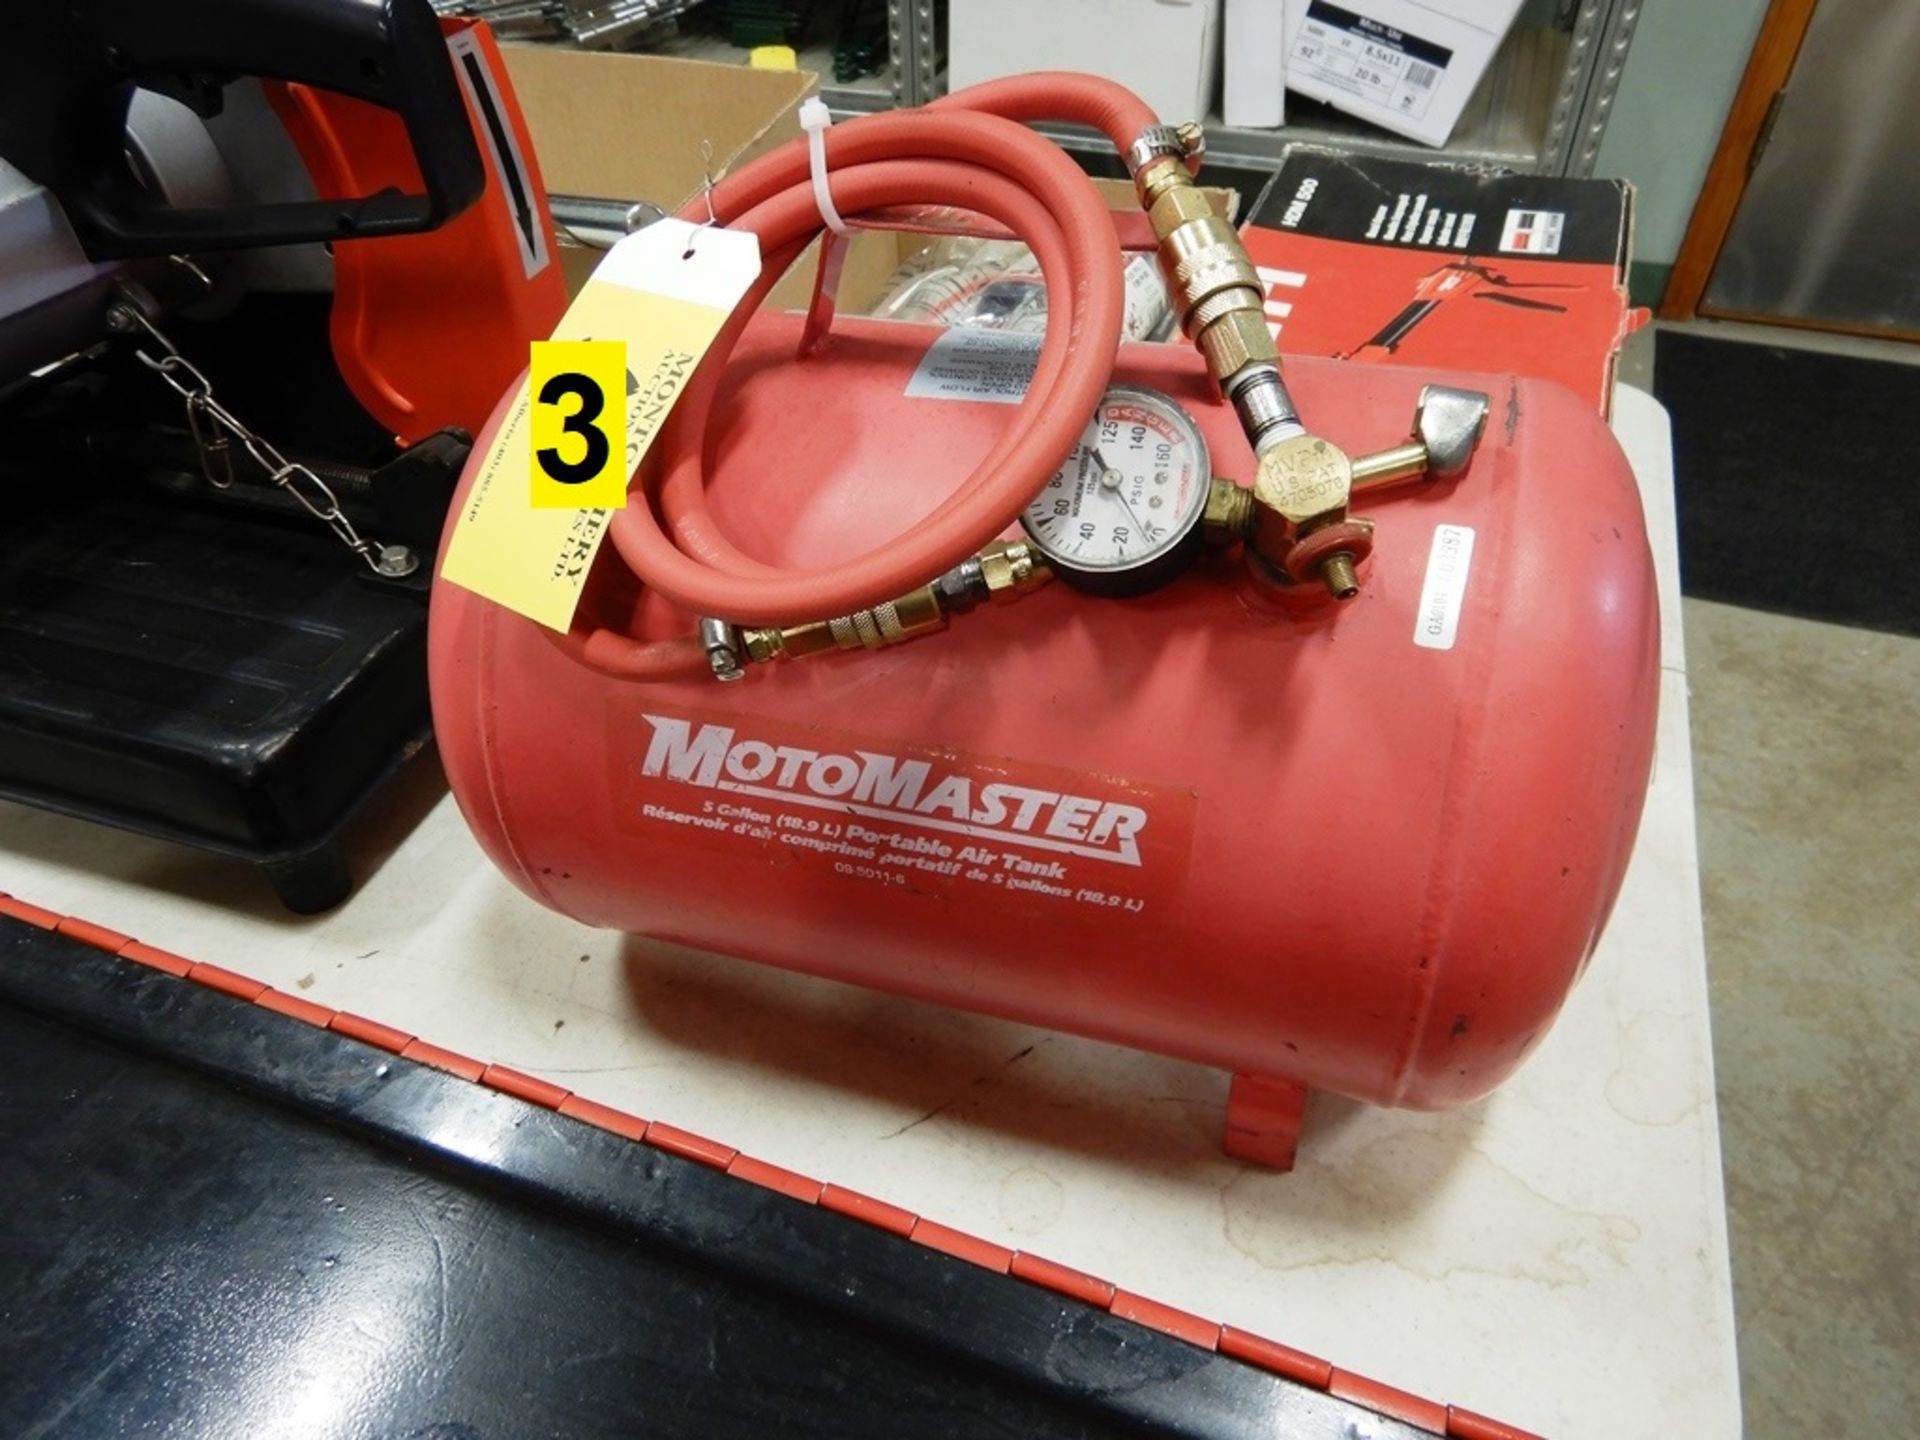 Lot 3 - MOTORMASTER 5 GAL PORTABLE AIR TANK W/ HOSE